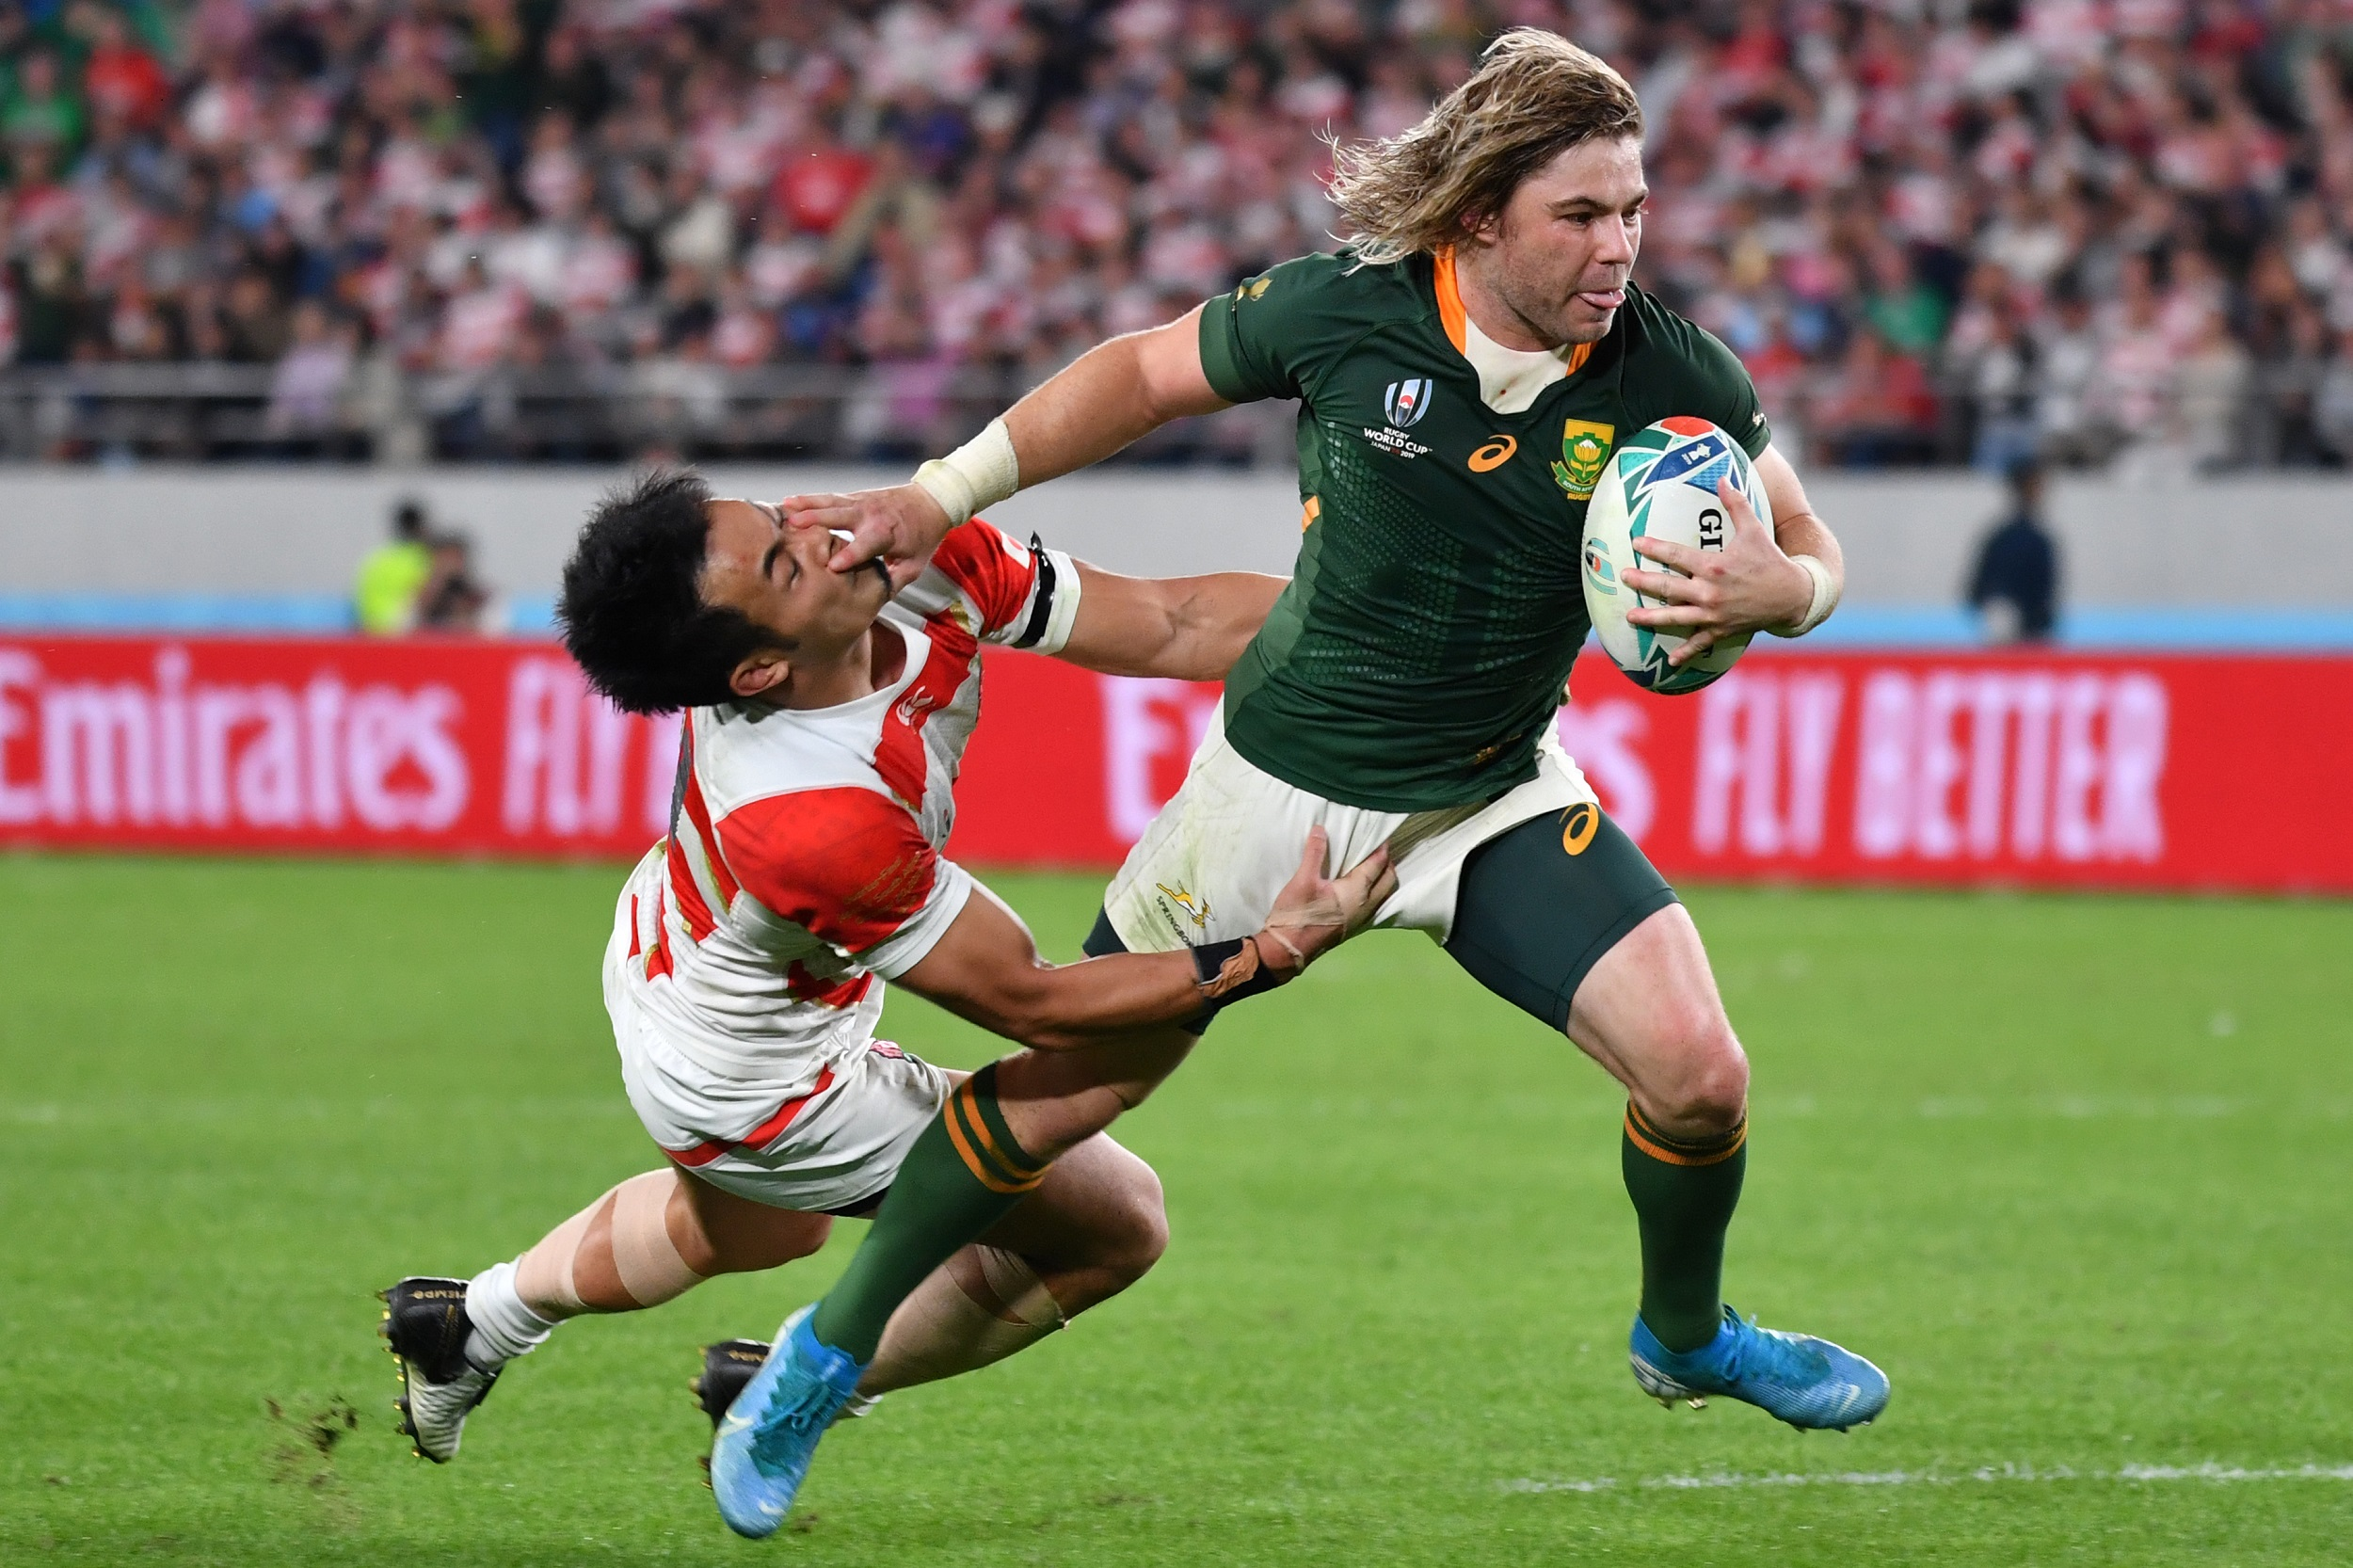 Scrum-half Faf de Klerk (R) scores a try during the Japan 2019 Rugby World Cup quarter-final match between Japan and South Africa.